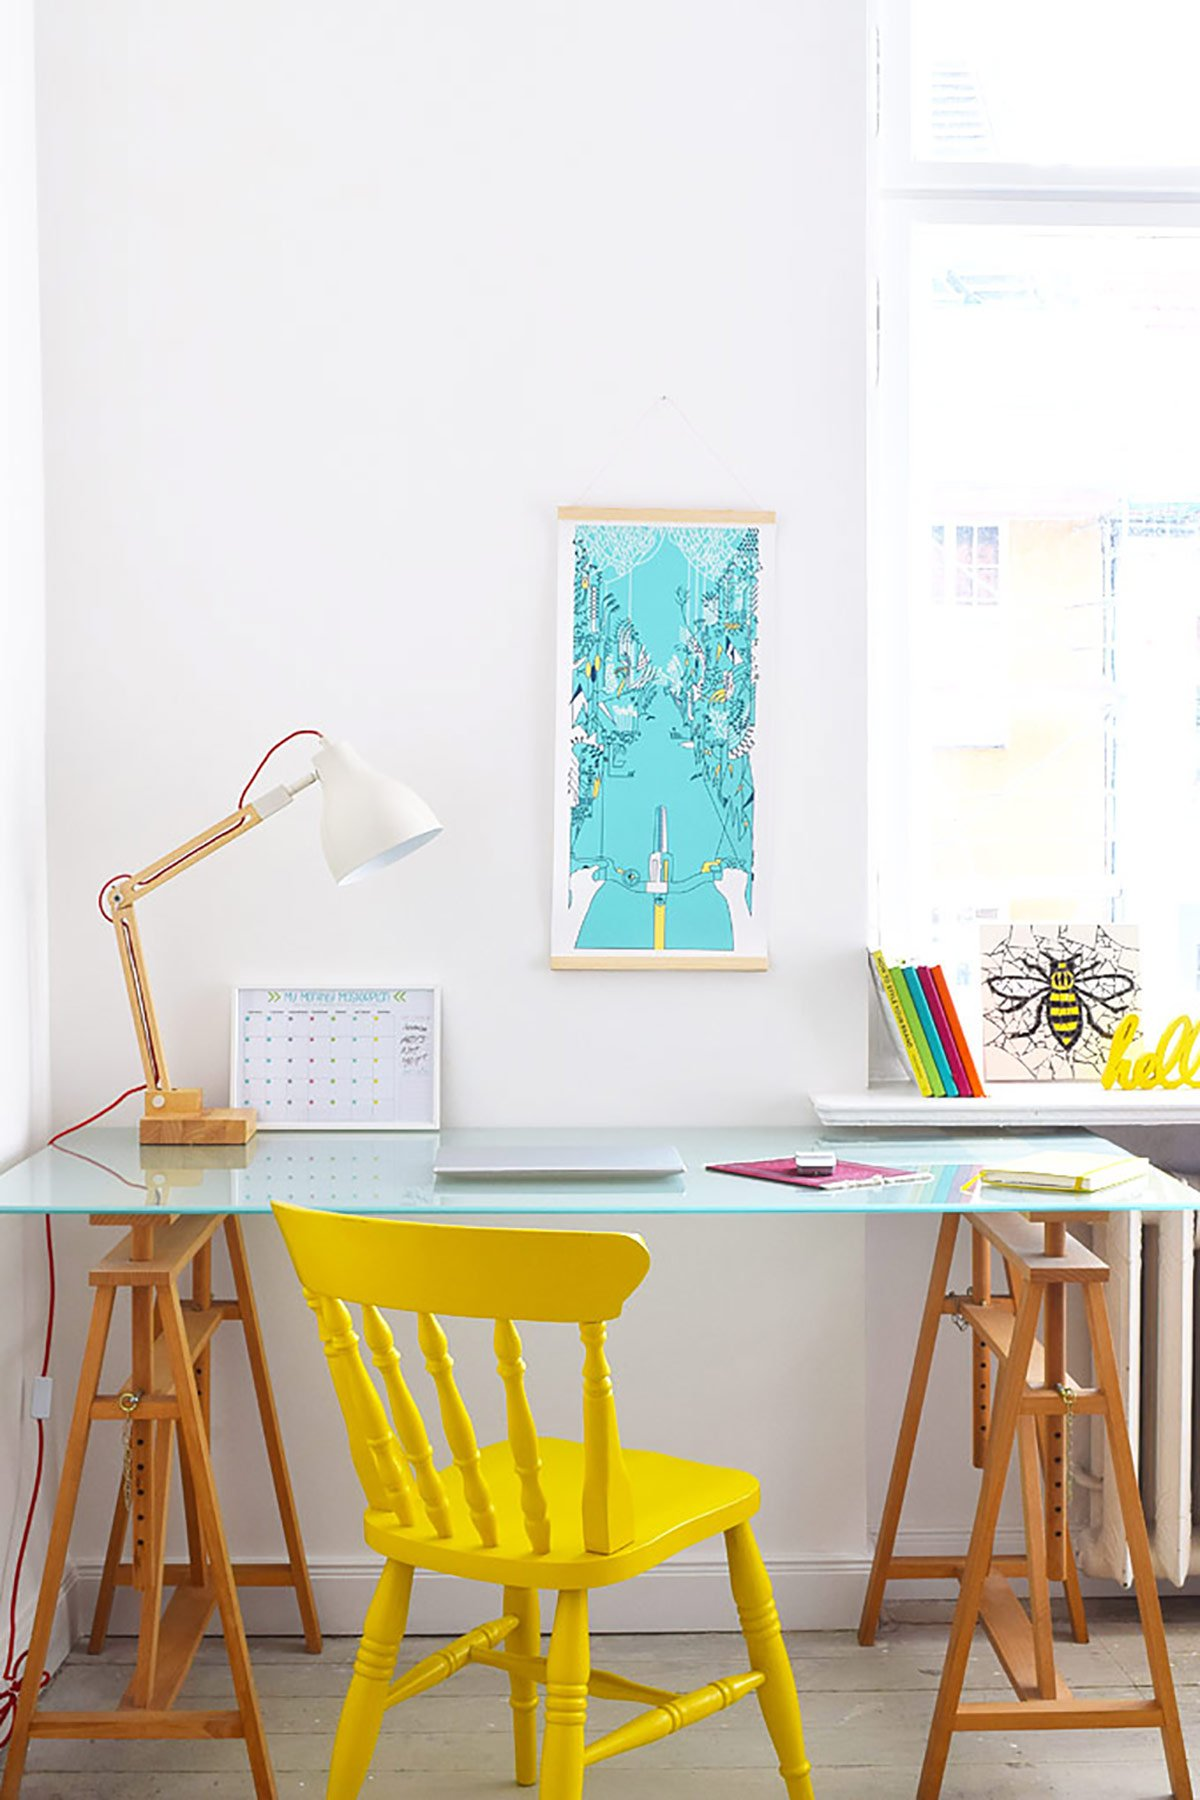 5 Tips For Creating A Motivational Home Office - The Desk - Little House On The Corner